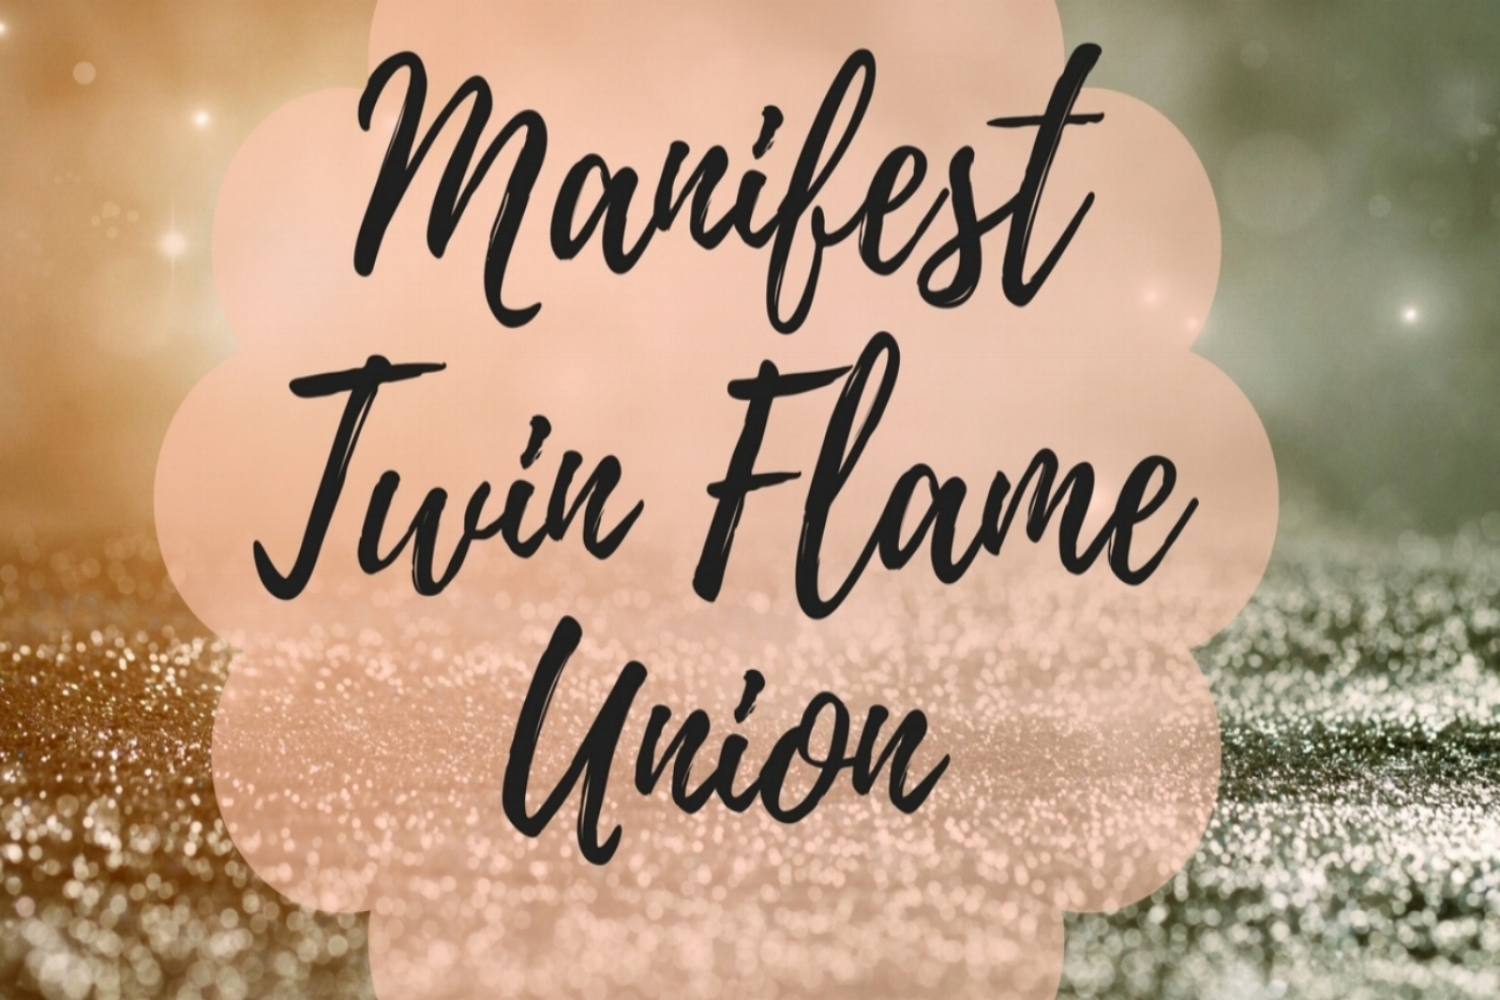 Manifest Twin Flame Union